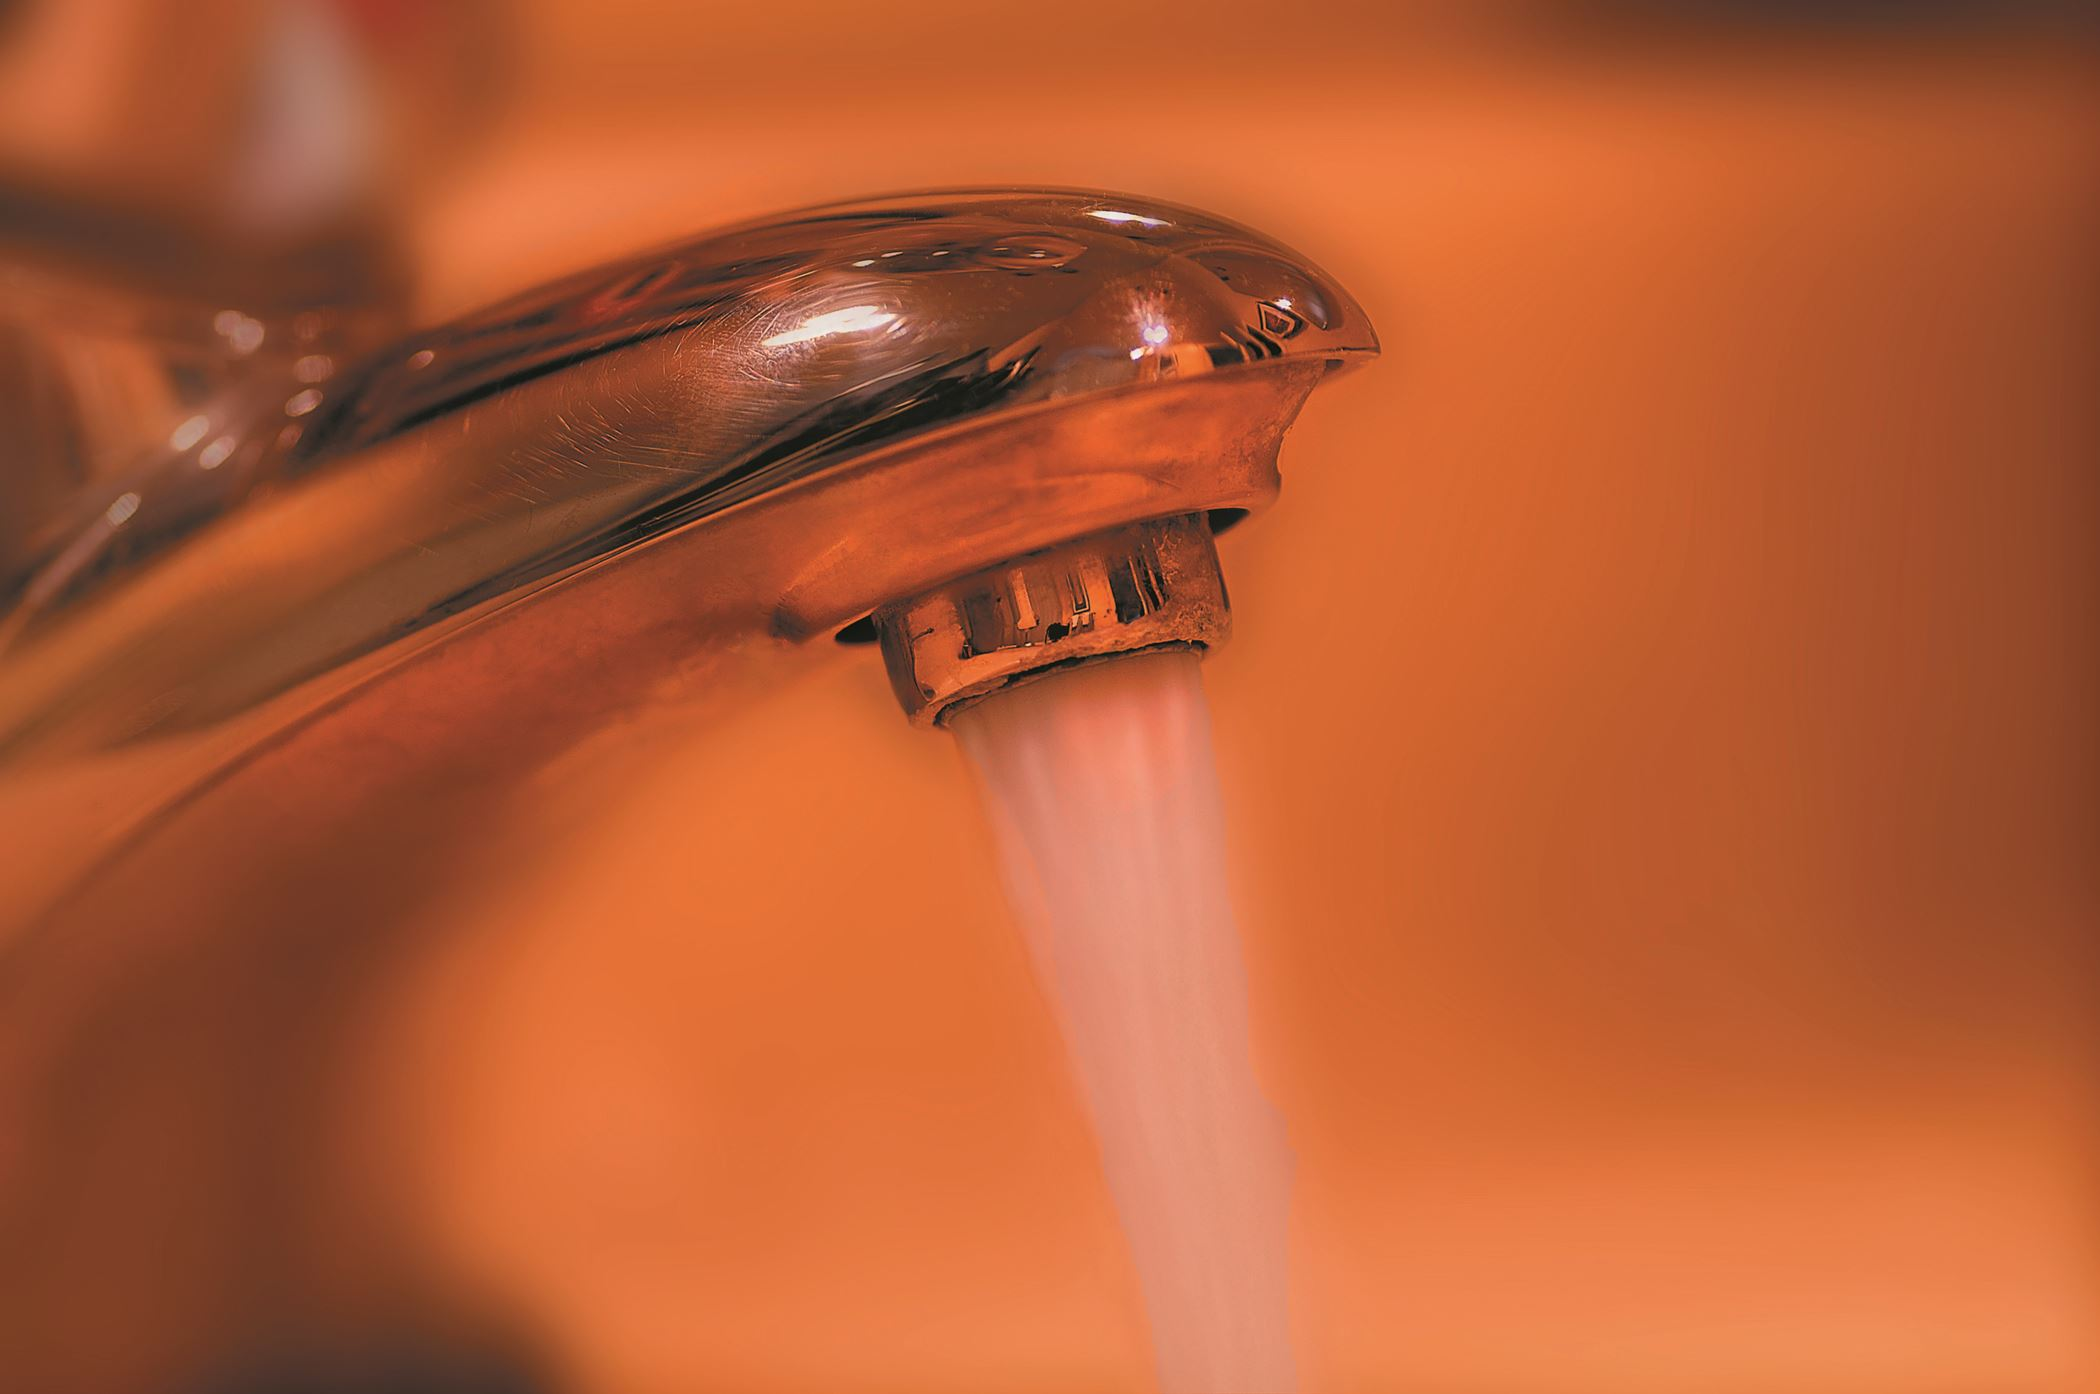 bigstockphoto_Gold_Faucet_274316